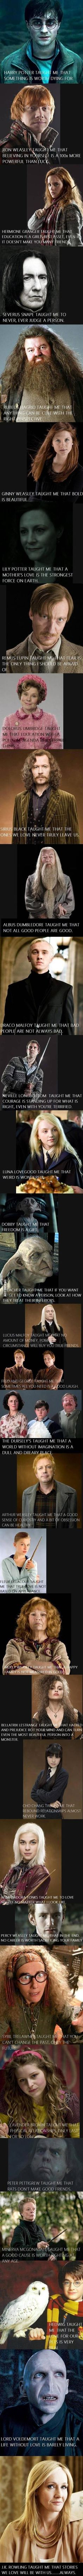 33 Real Life Lessons from 'Harry Potter' - Geeks are Sexy Technology NewsGeeks are Sexy Technology News